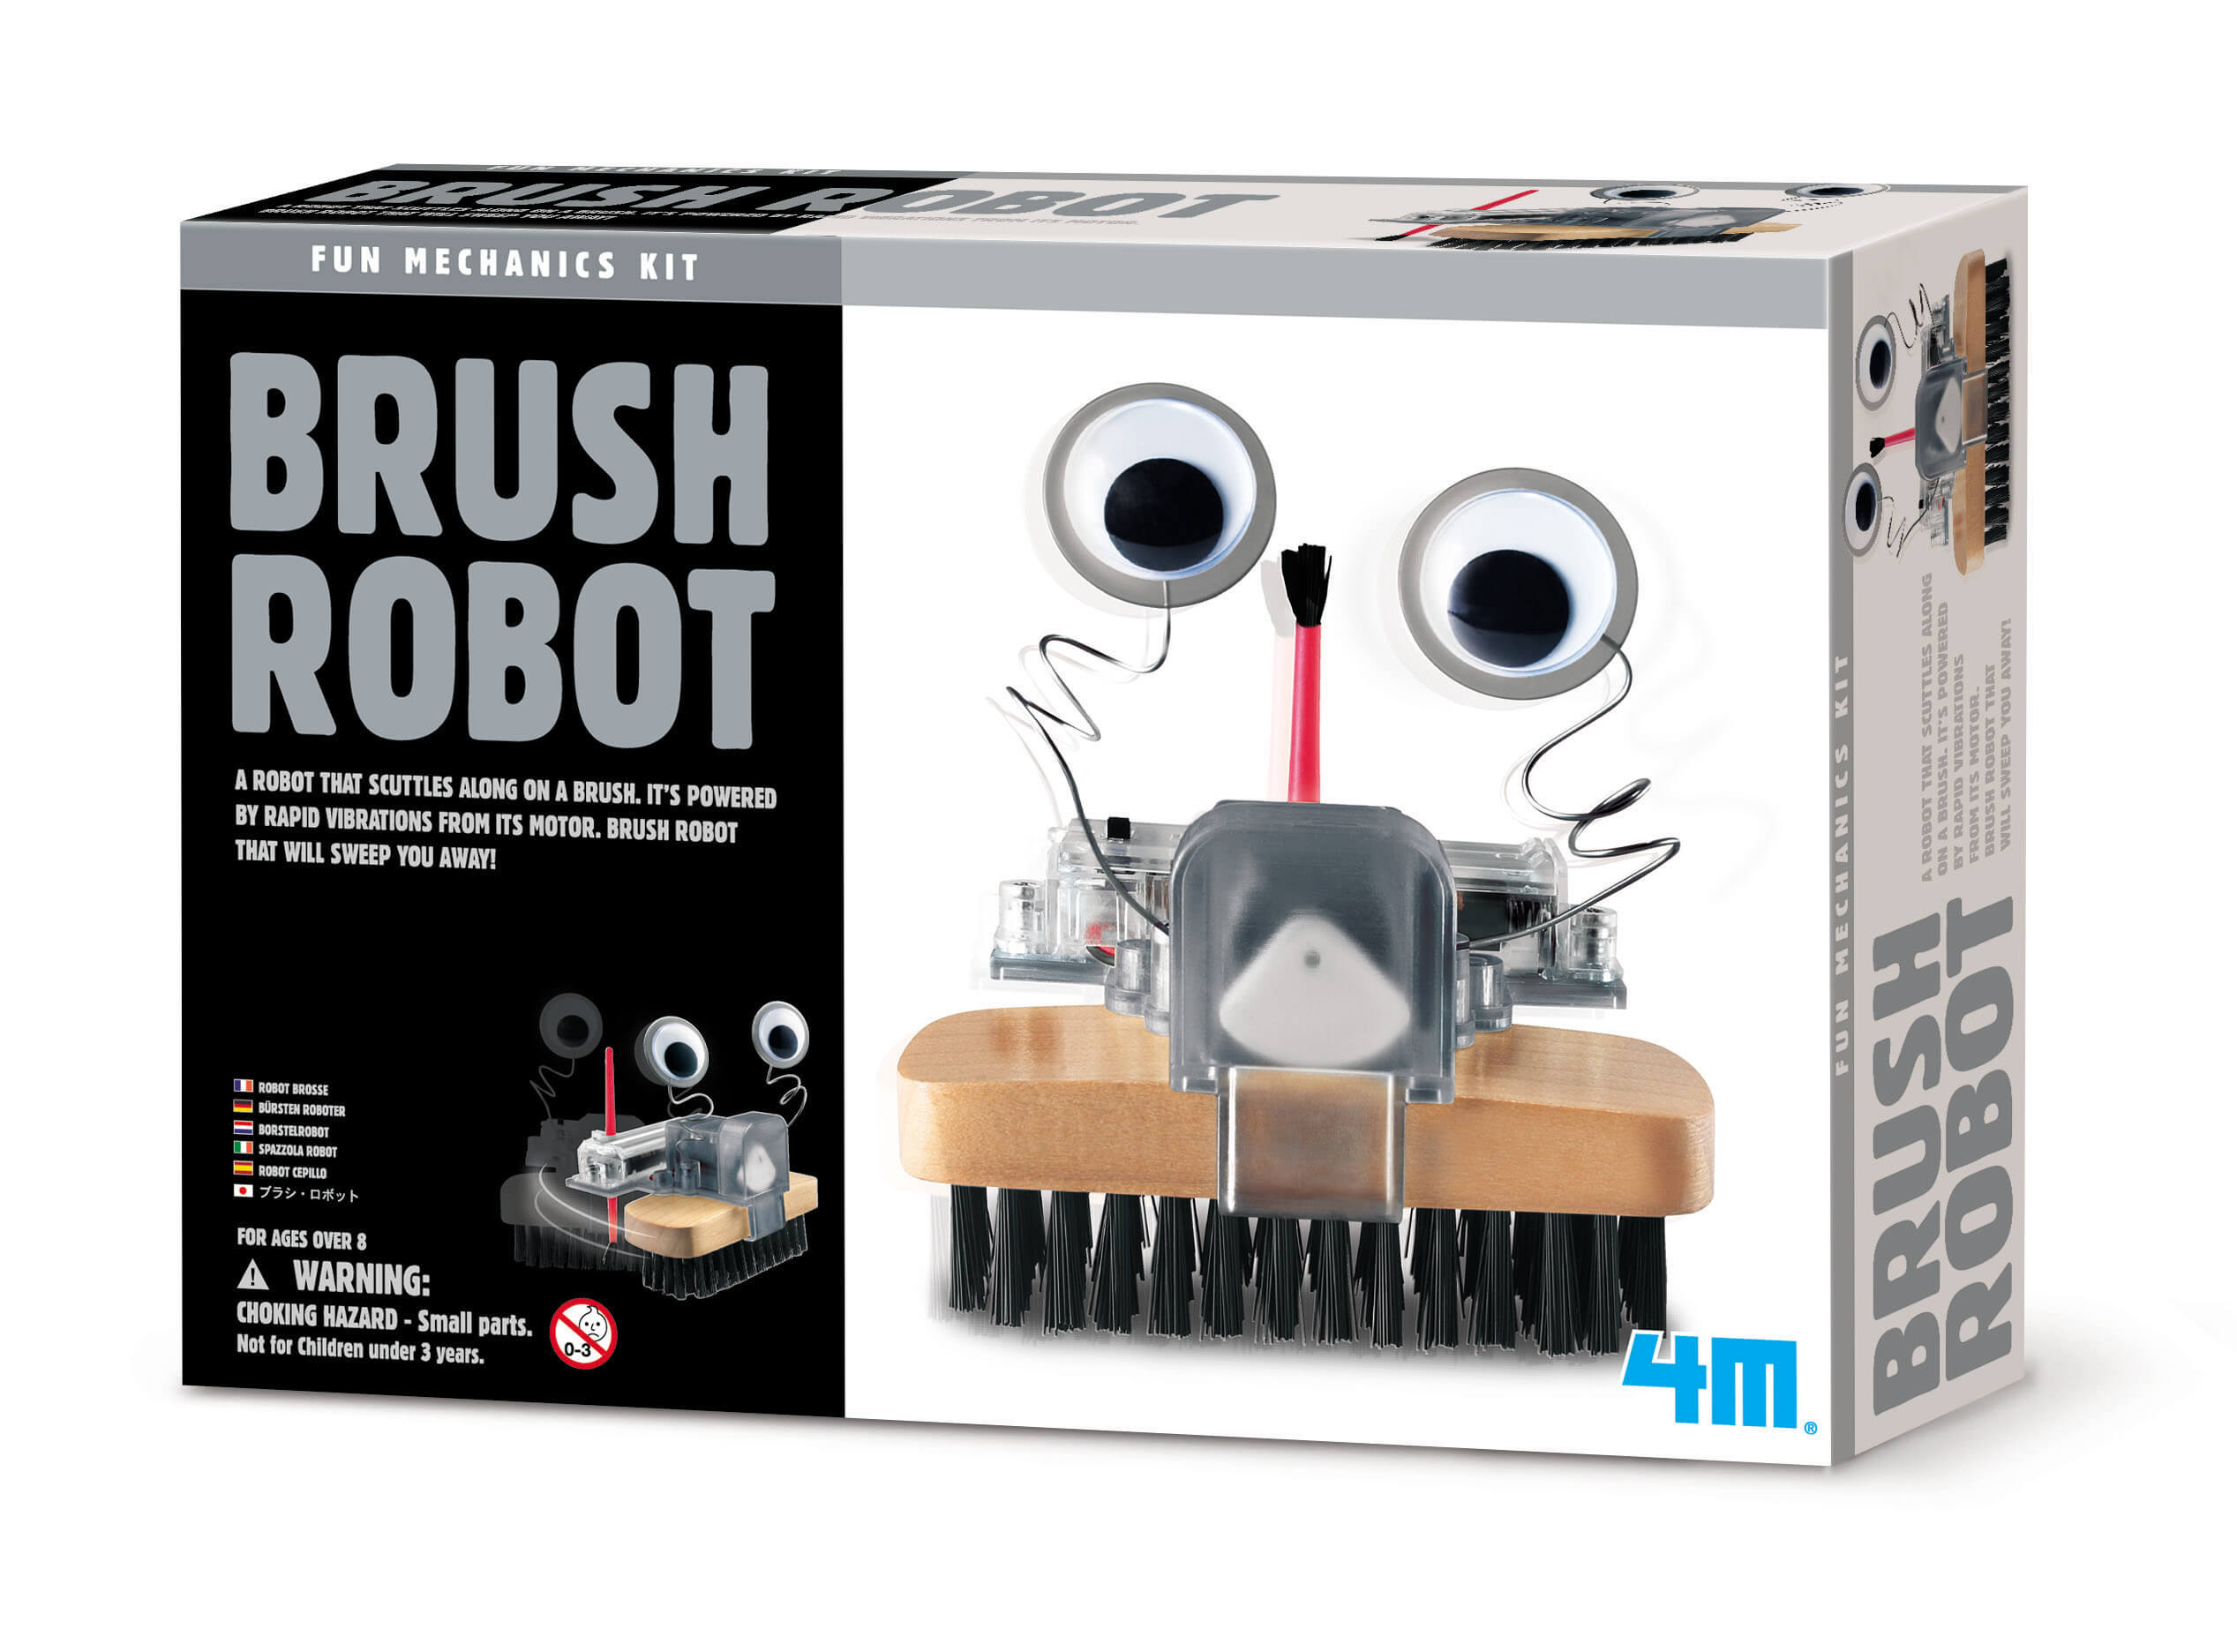 Image of Brush Robot fra 4M Fun Mechanics - Byg en motordreven robotbørste (4M-3282)